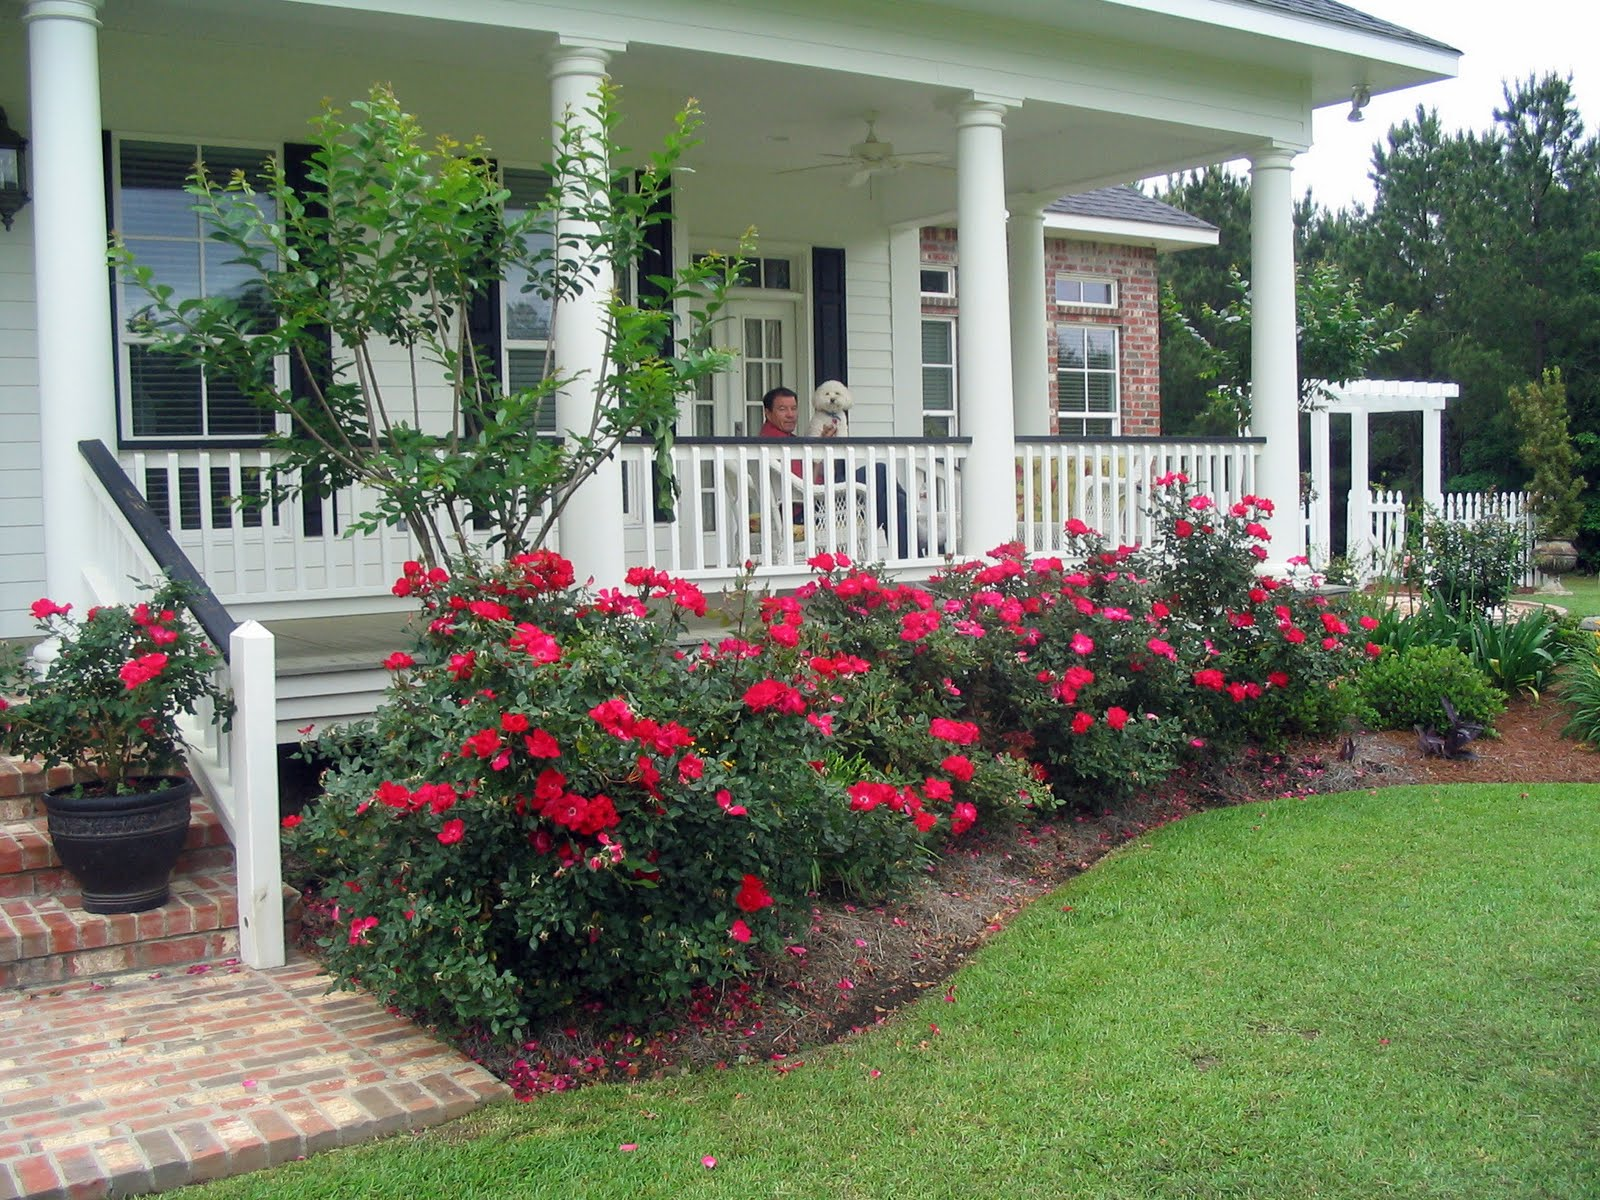 A southern belle dishes on decor my life on the front porch for How to plant bushes in front of house